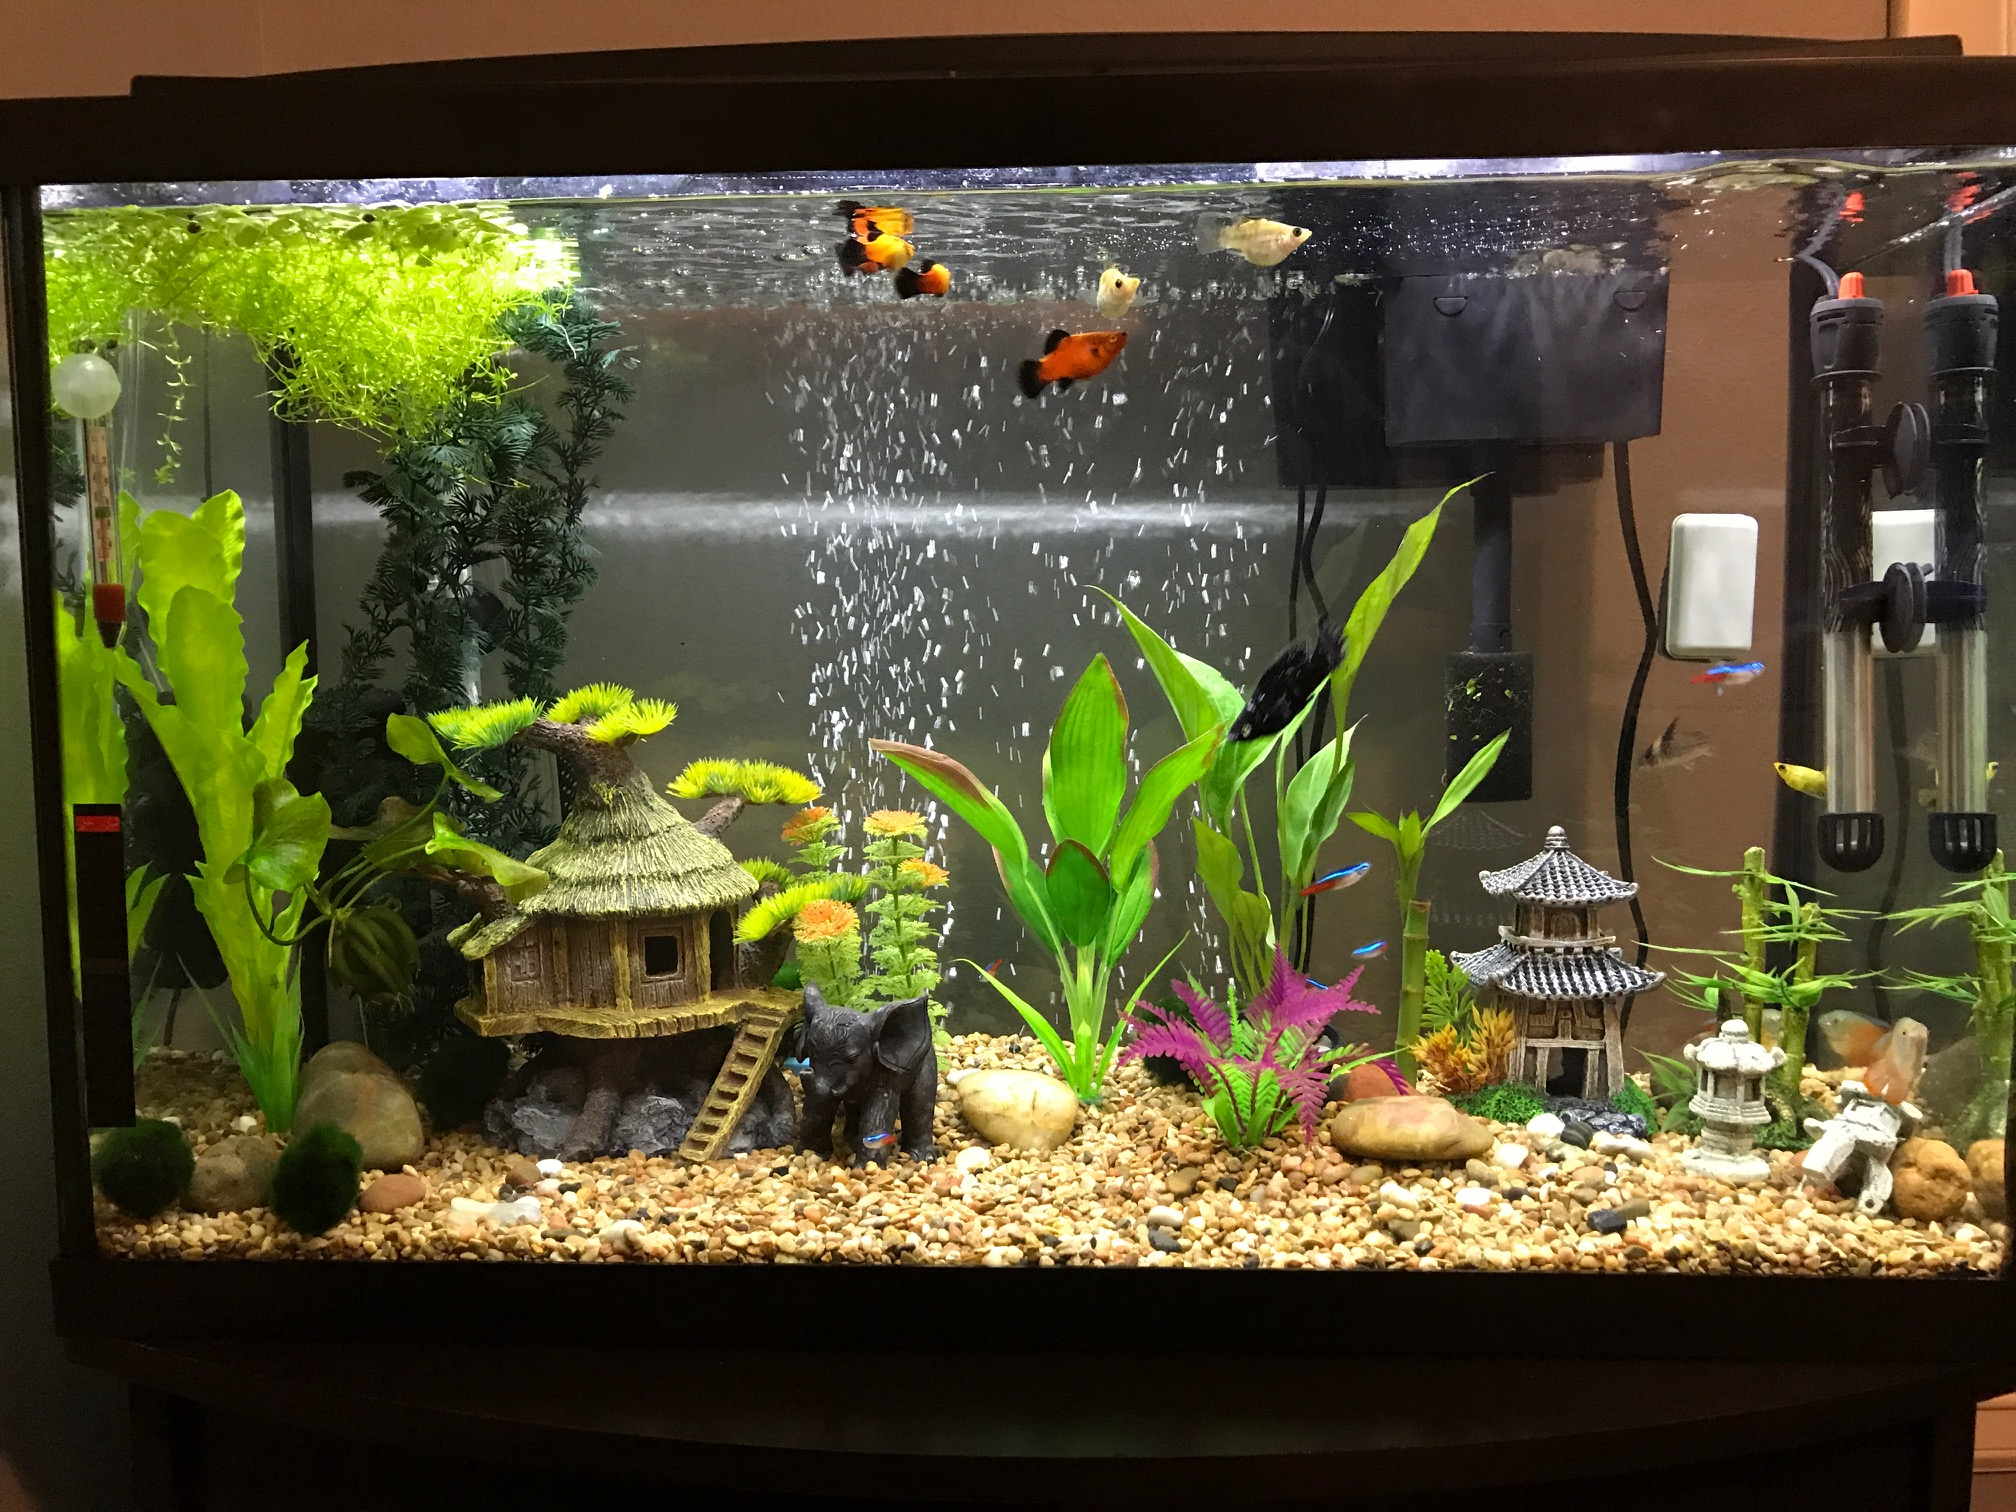 Non planted tank on May 19, 2017